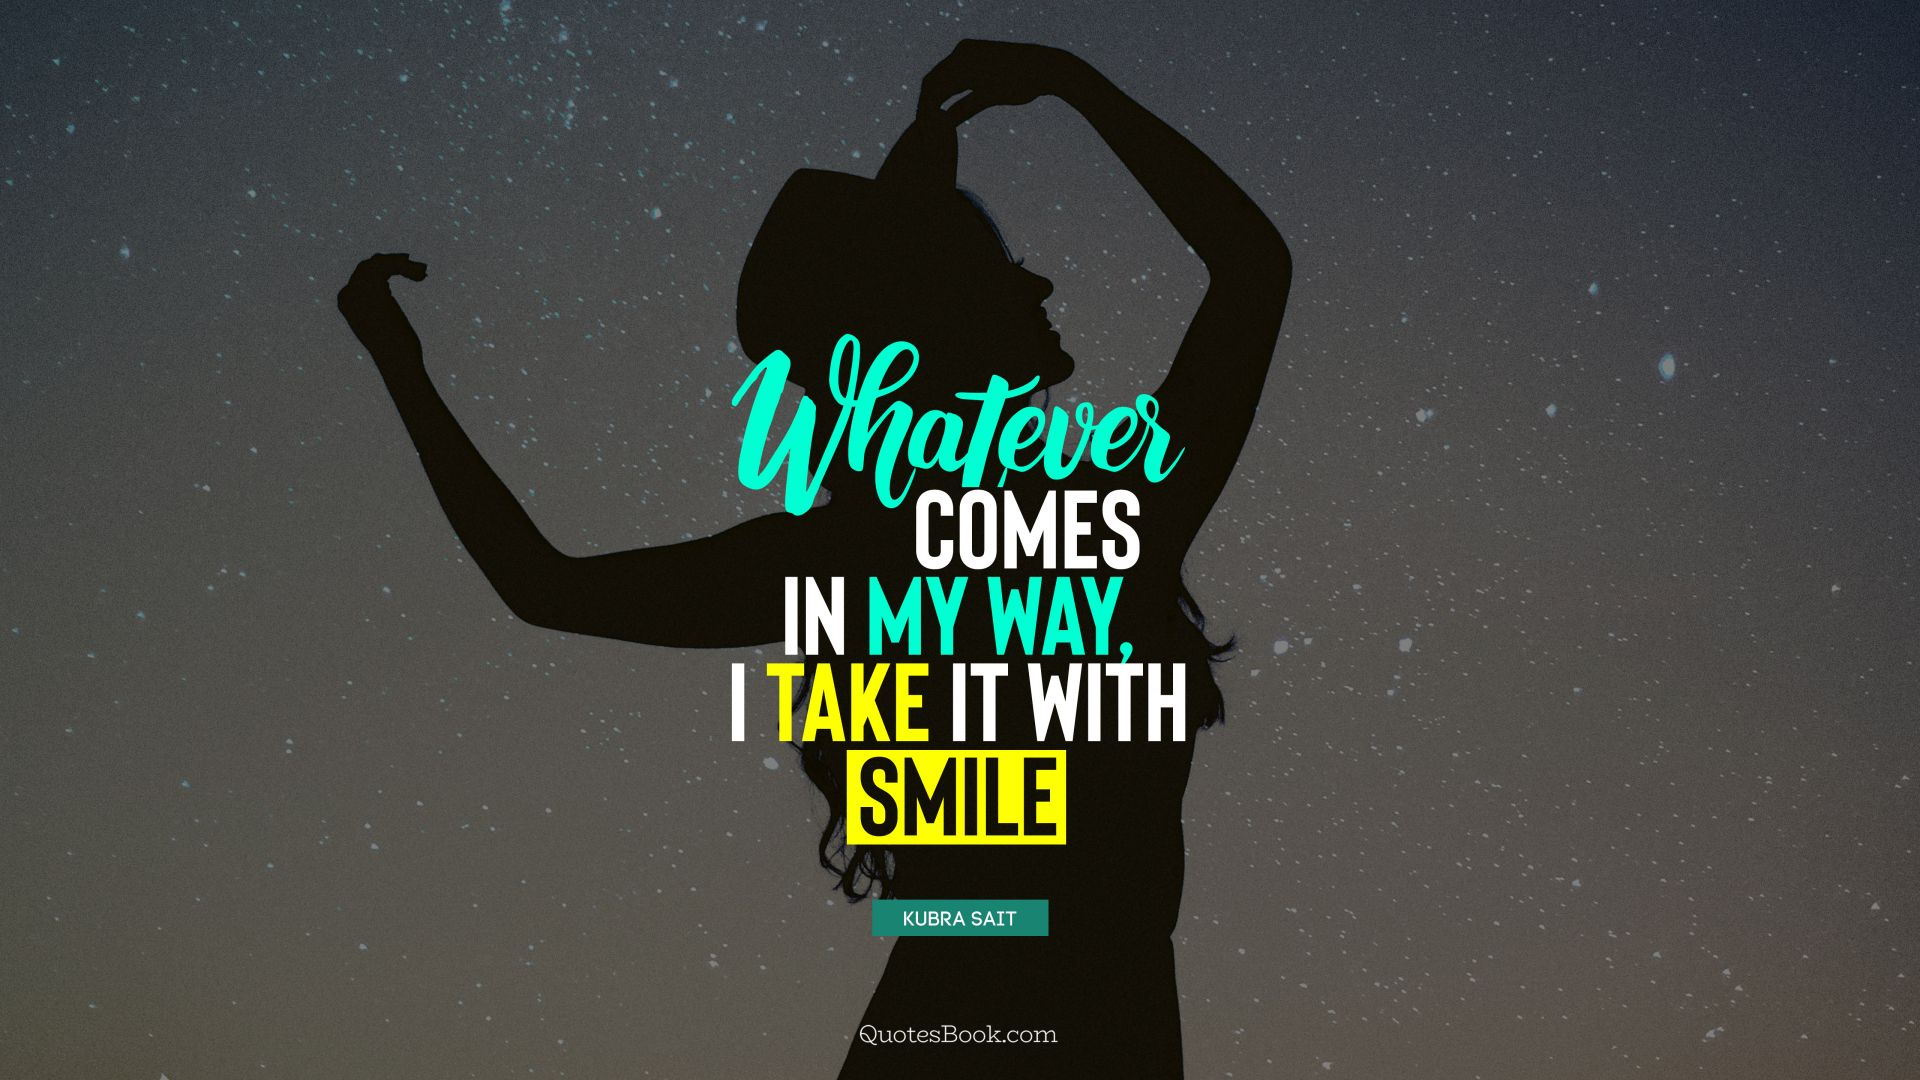 Whatever comes in my way, I take it with smile. - Quote by Kubra Sait